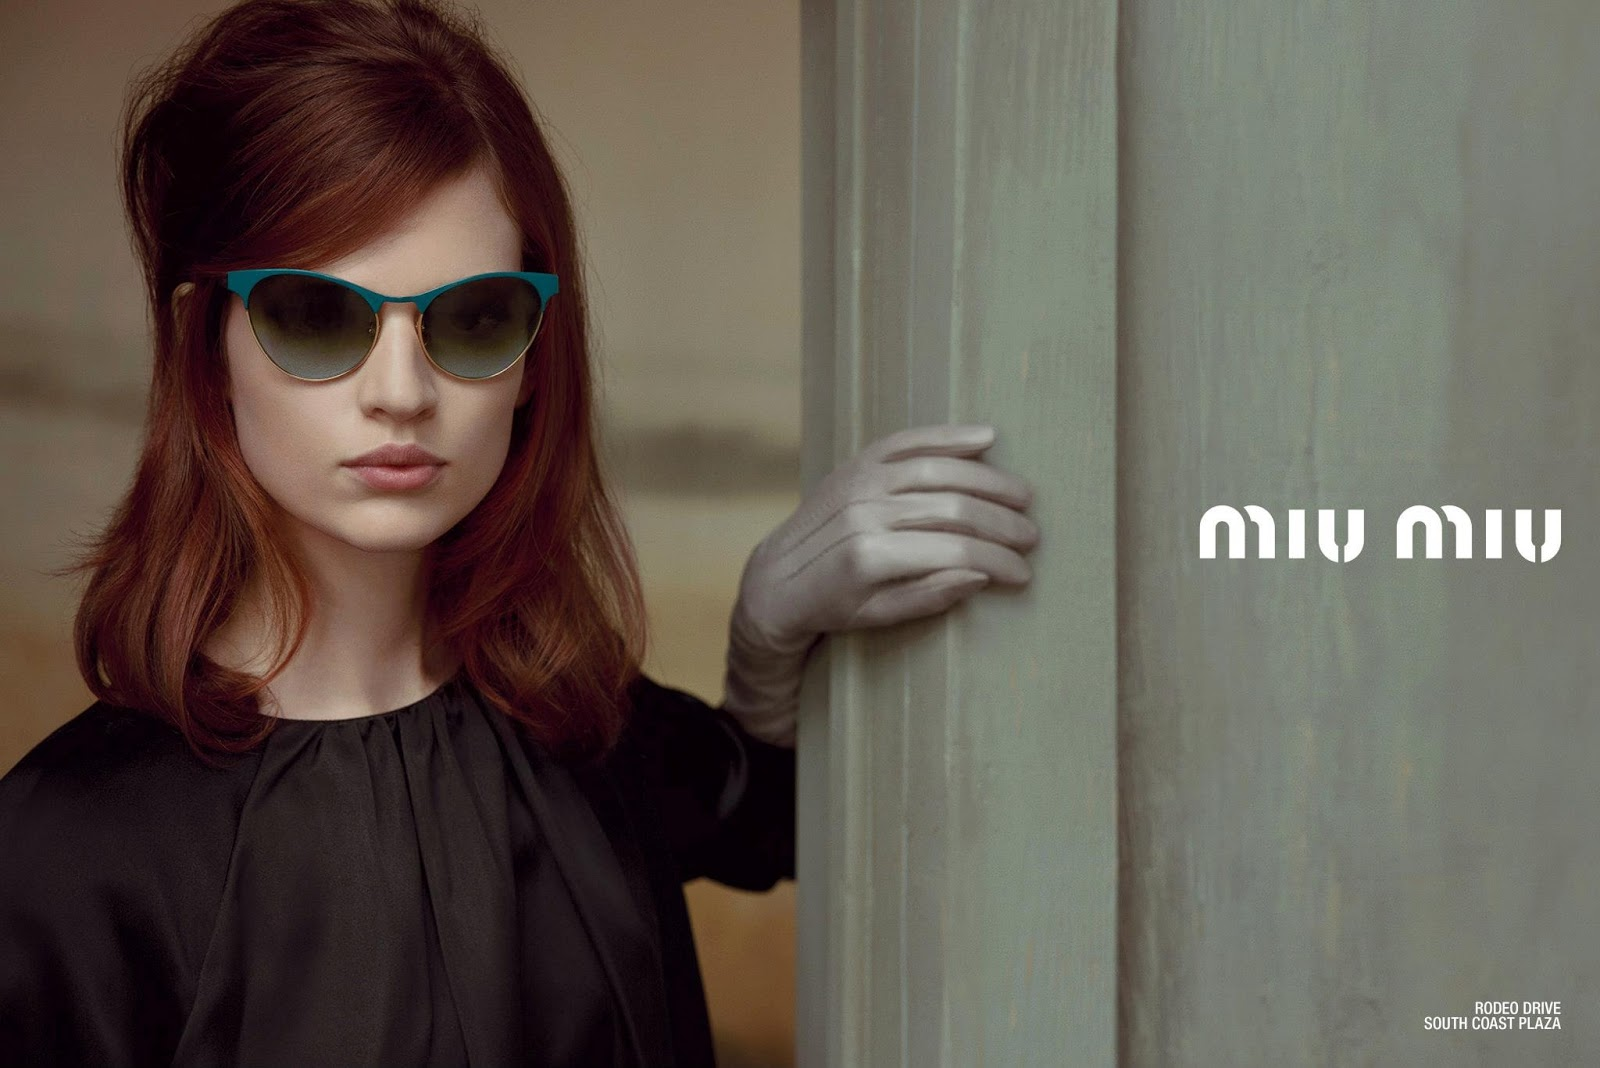 Miu Miu Spring 13 Eyewear by Inez and Vinoodh from tfs - 2